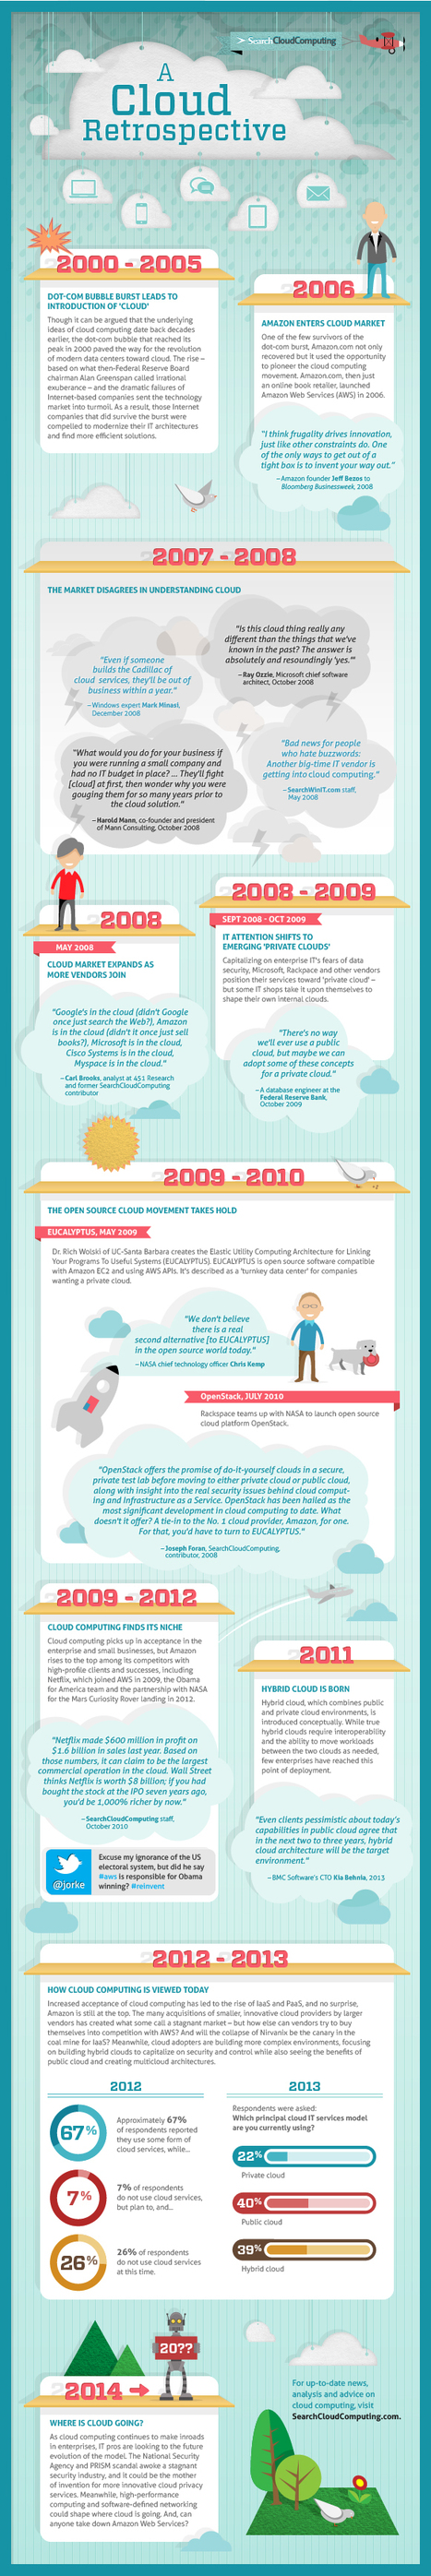 INFOGRAPHIC: Cloud computing timeline illustrates cloud's past, predicts its future | networking people and companies | Scoop.it